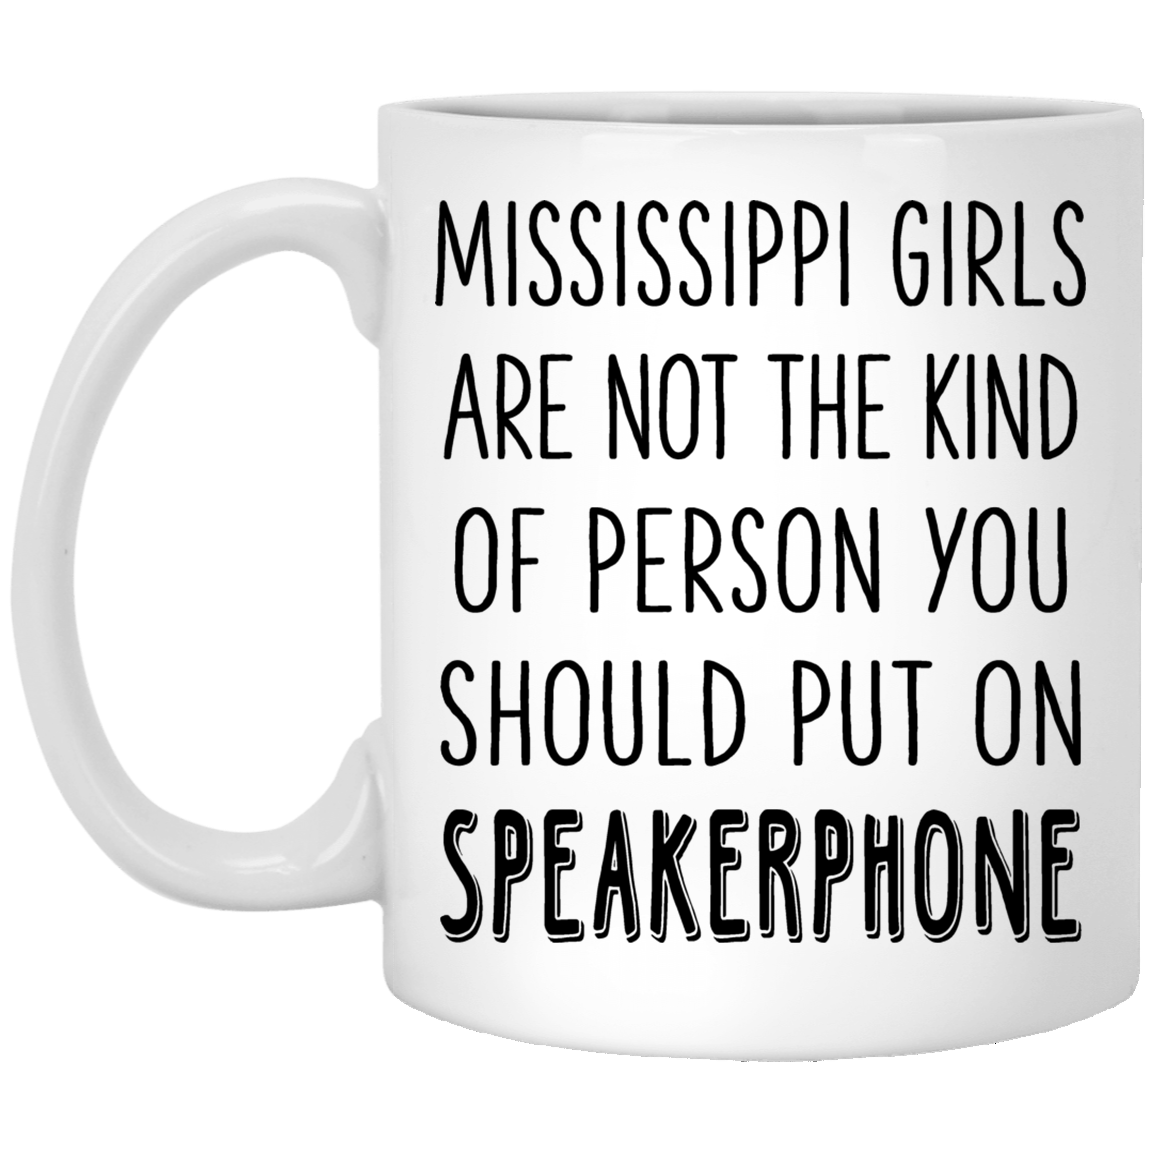 MISSISSIPPI GIRLS ARE NOT THE KIND OF PERSON YOU SHOULD PUT ON SPEAKER